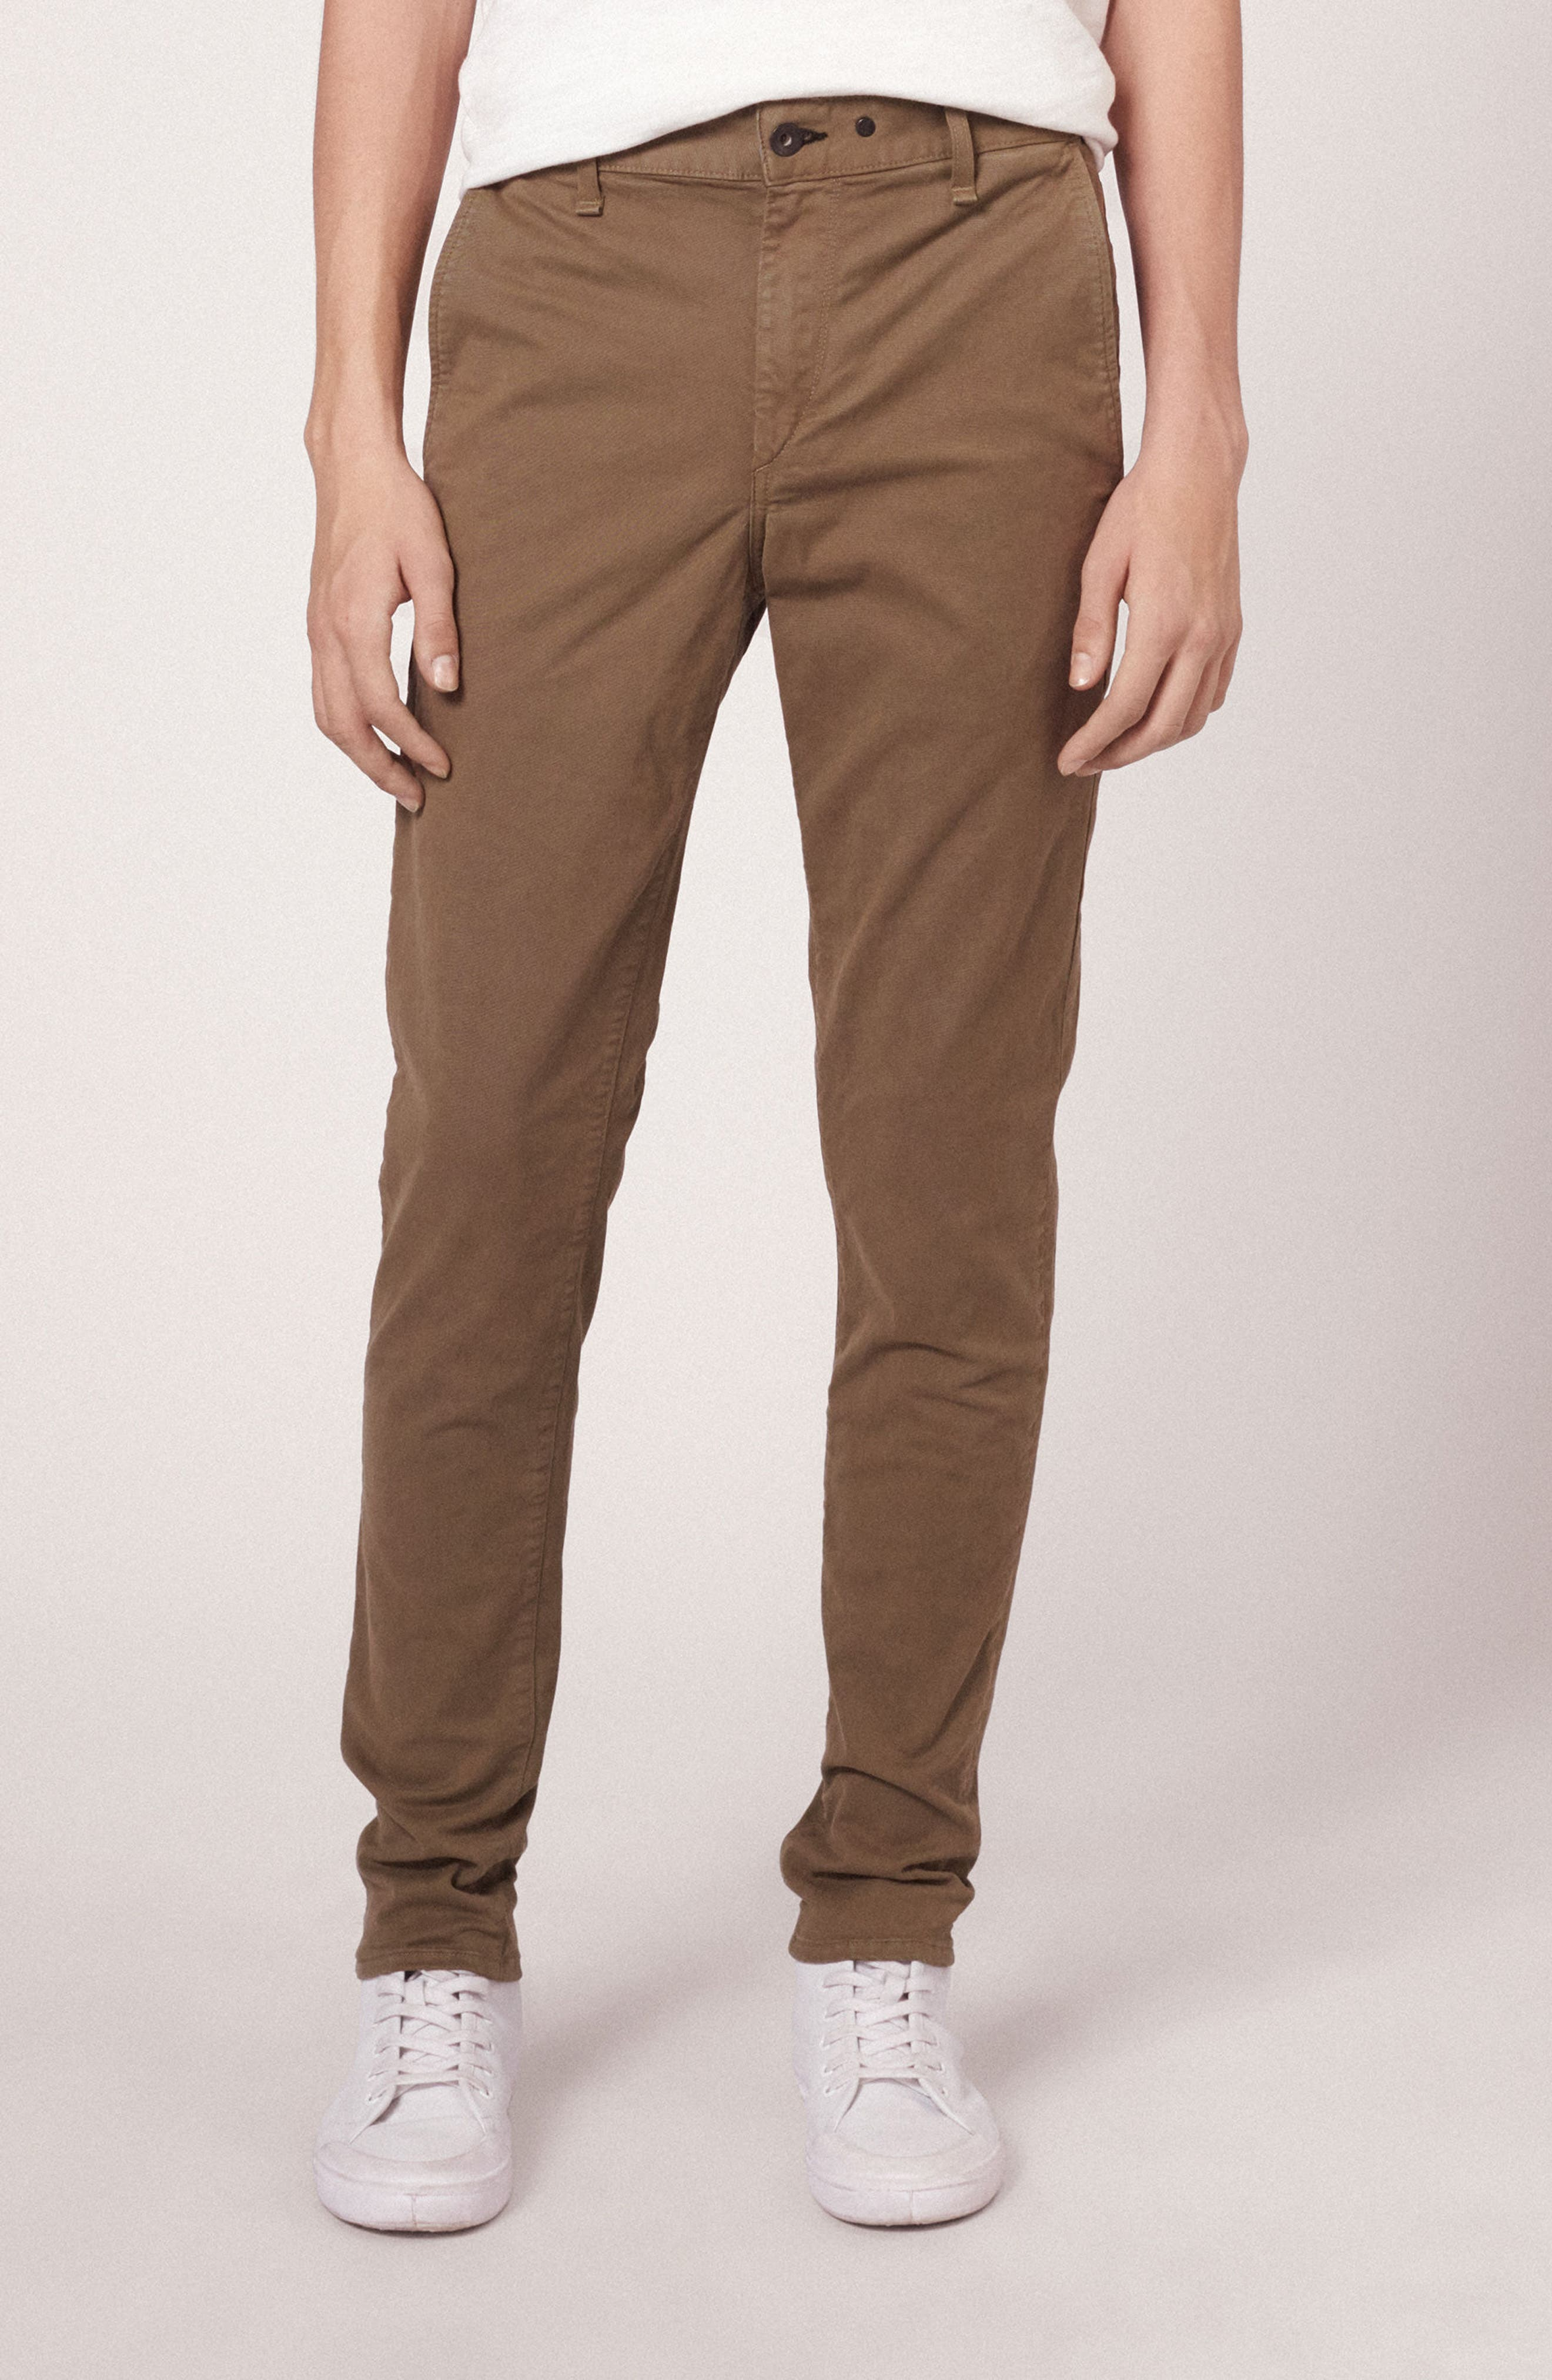 Fit 1 Chinos,                             Alternate thumbnail 7, color,                             ARMY GREEN